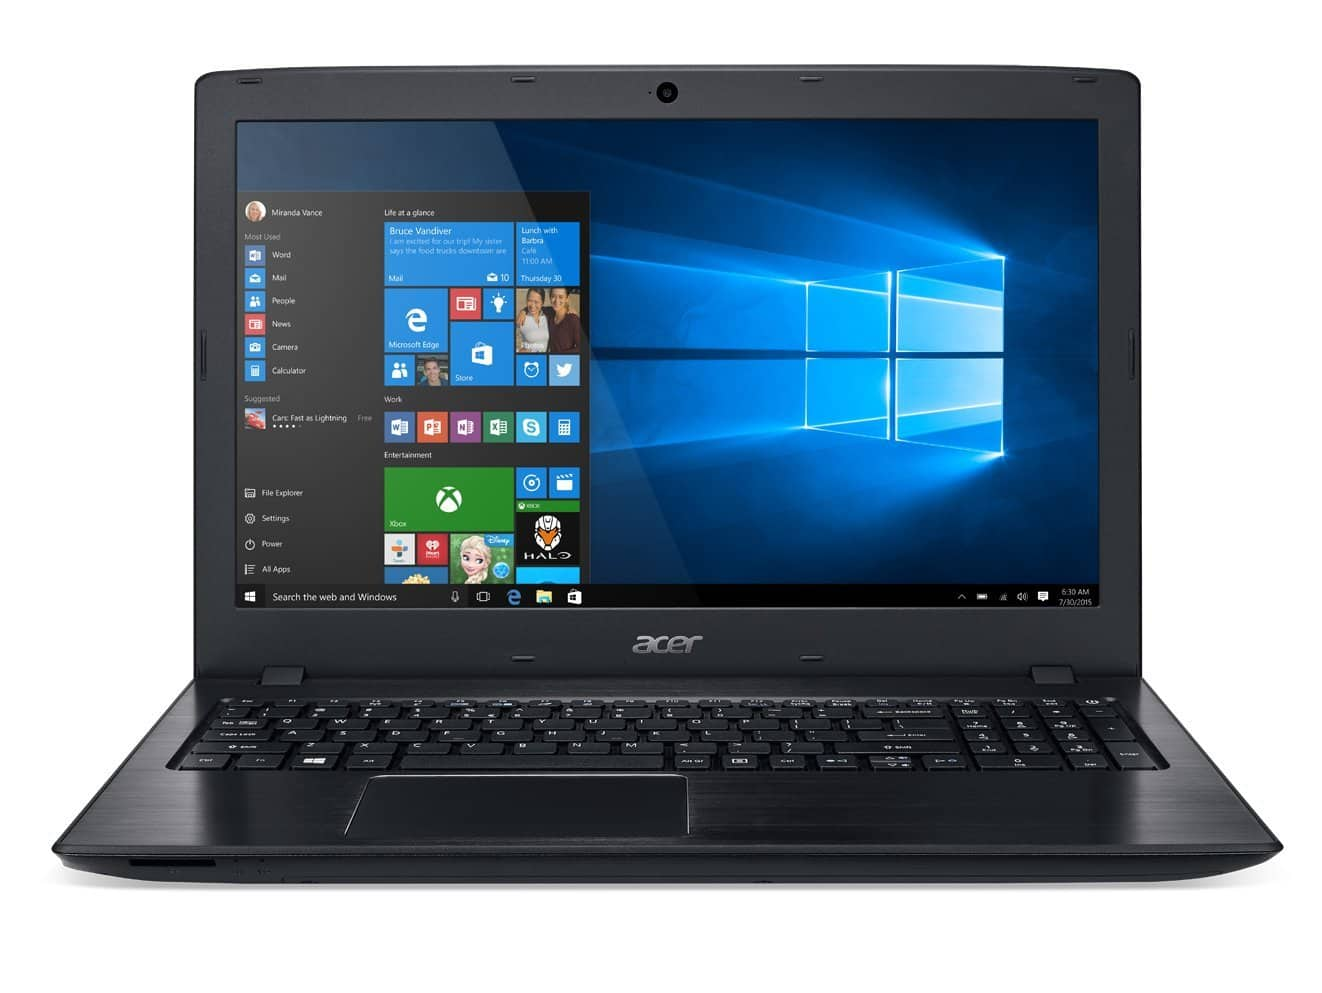 "Acer Aspire E 15 E5-576G-825K Laptop: Intel Core i7-8550U Quad-Core, 15.6"" 1080p LED, 8GB RAM, 256GB SSD, MX150 2GB, Win 10 $799.99 + Free Shipping @ Amazon"